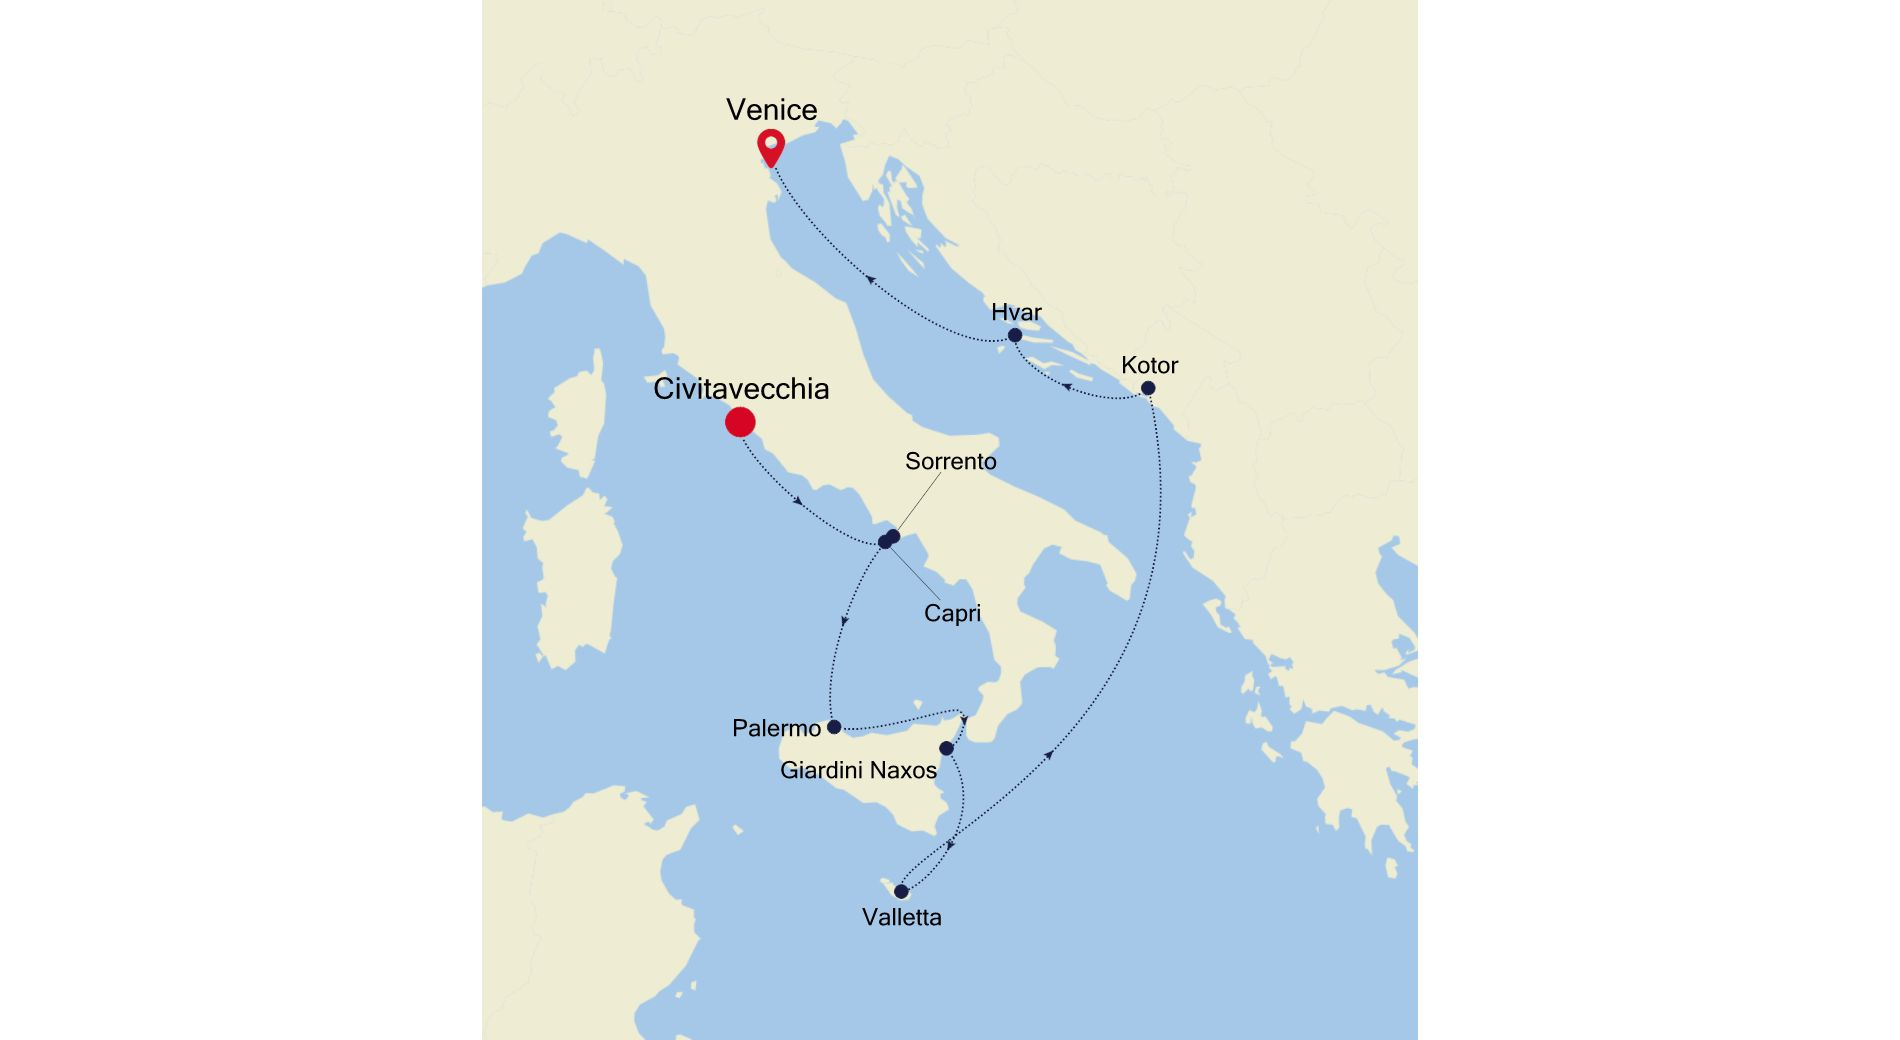 4912 - Civitavecchia to Venice